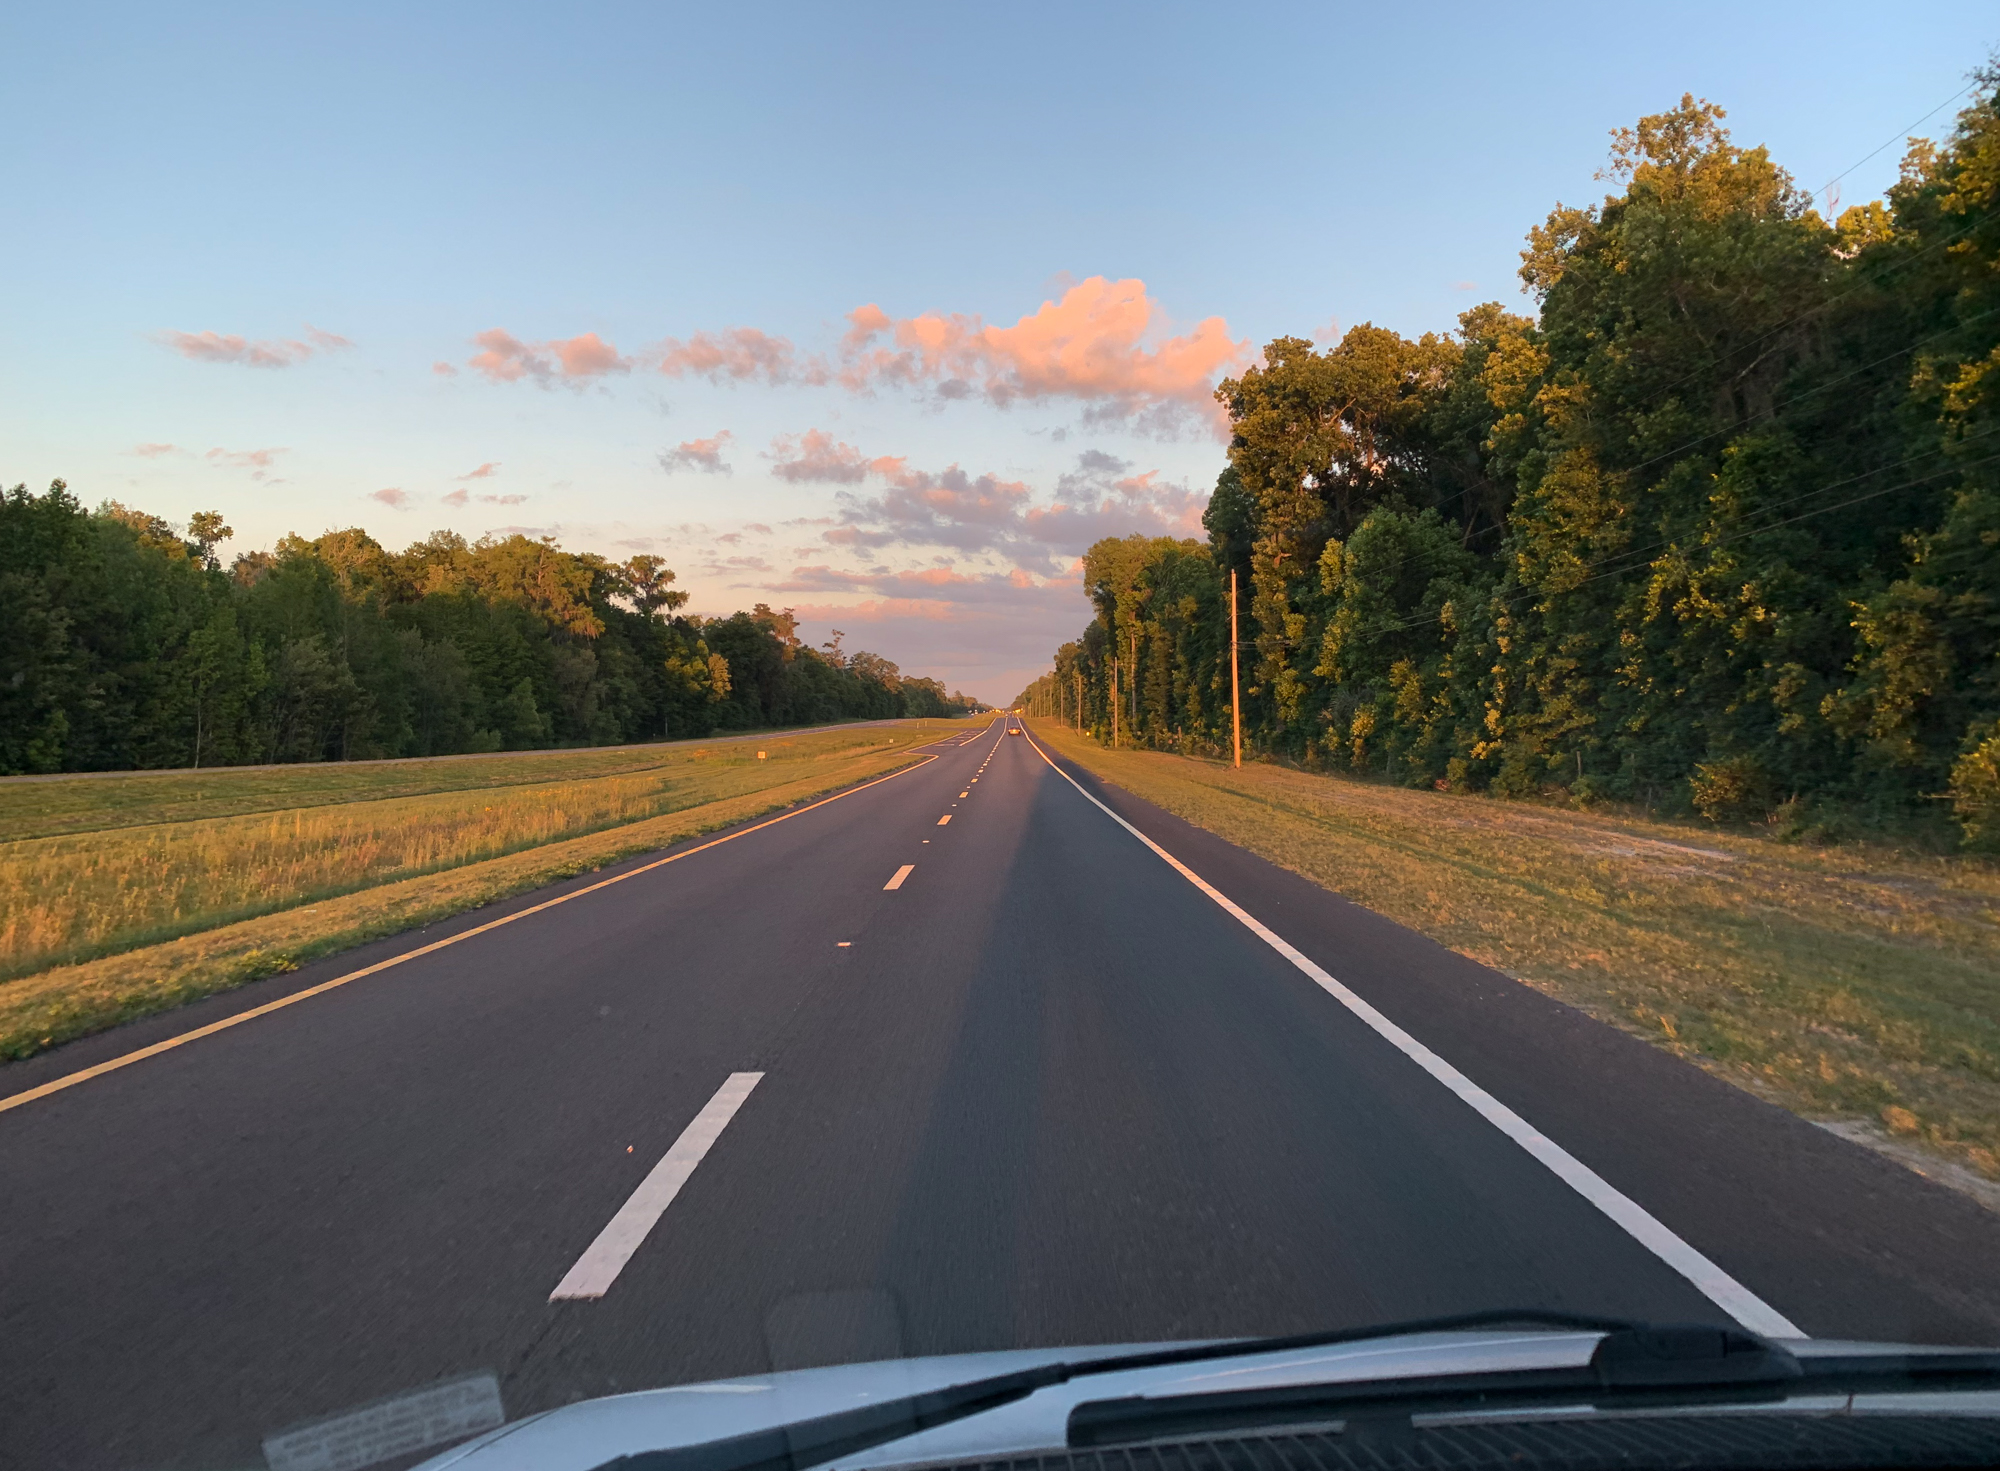 The van casts a long shadow on the highway as the sun goes down. Shot details: iPhone XR